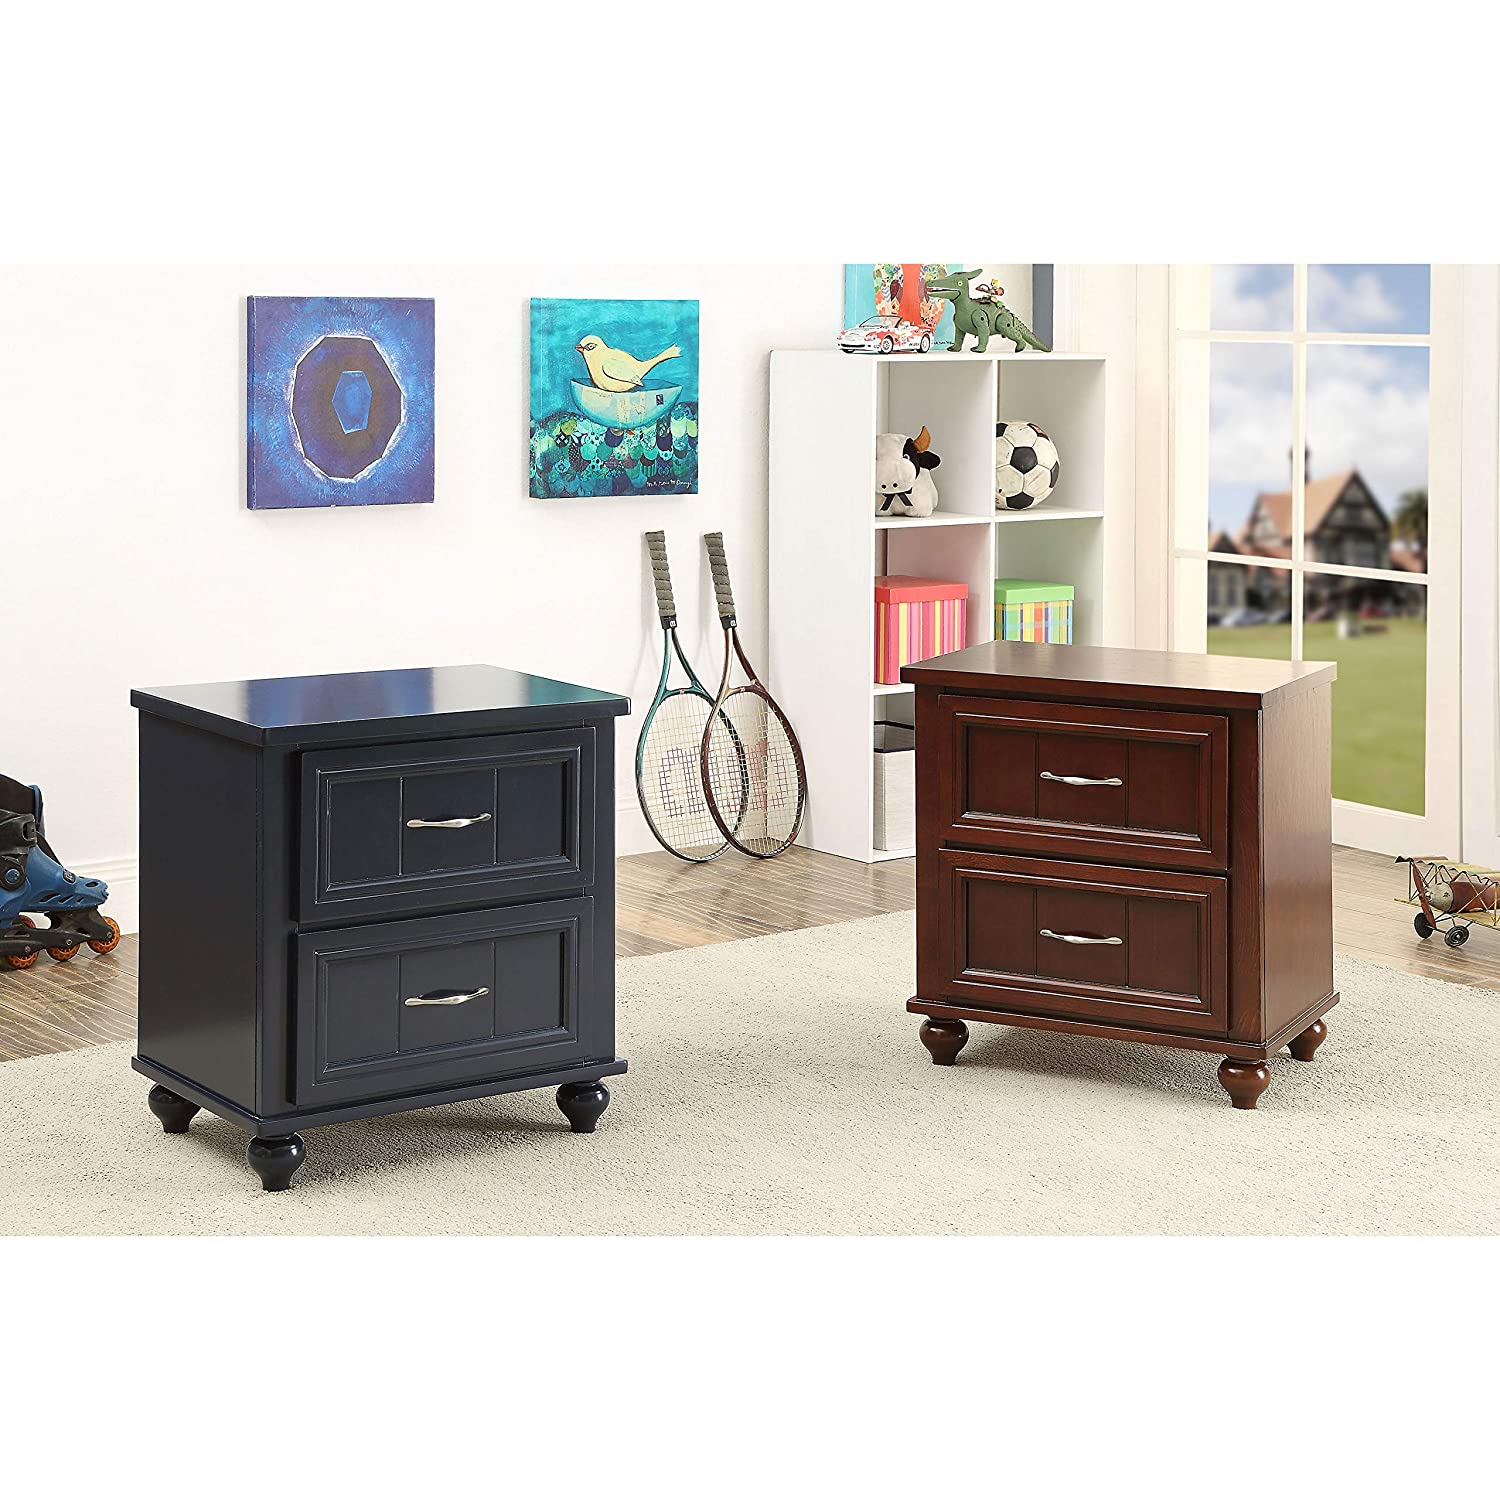 ioHOMES Felix Transitional Two Spacious Drawers Nightstand with Metal Glides Navy Blue